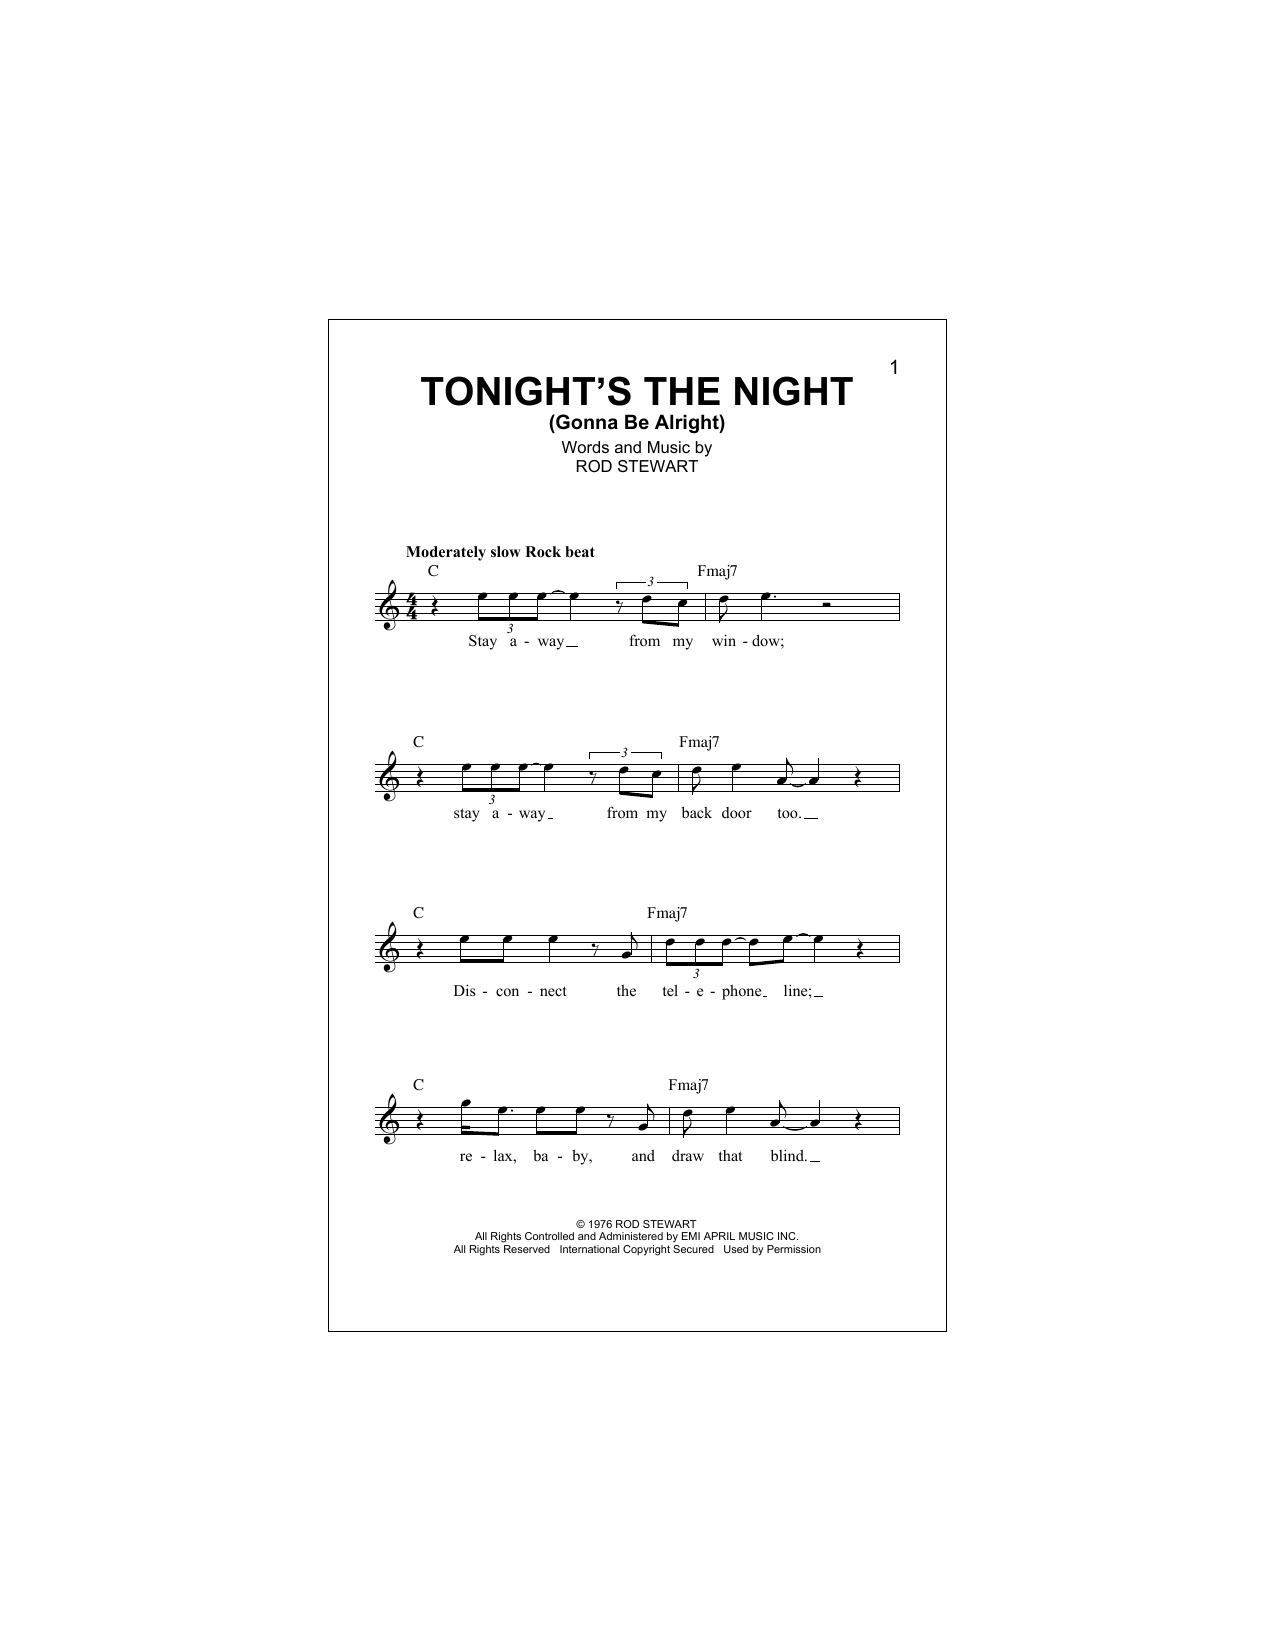 Tonight's The Night (Gonna Be Alright) Sheet Music